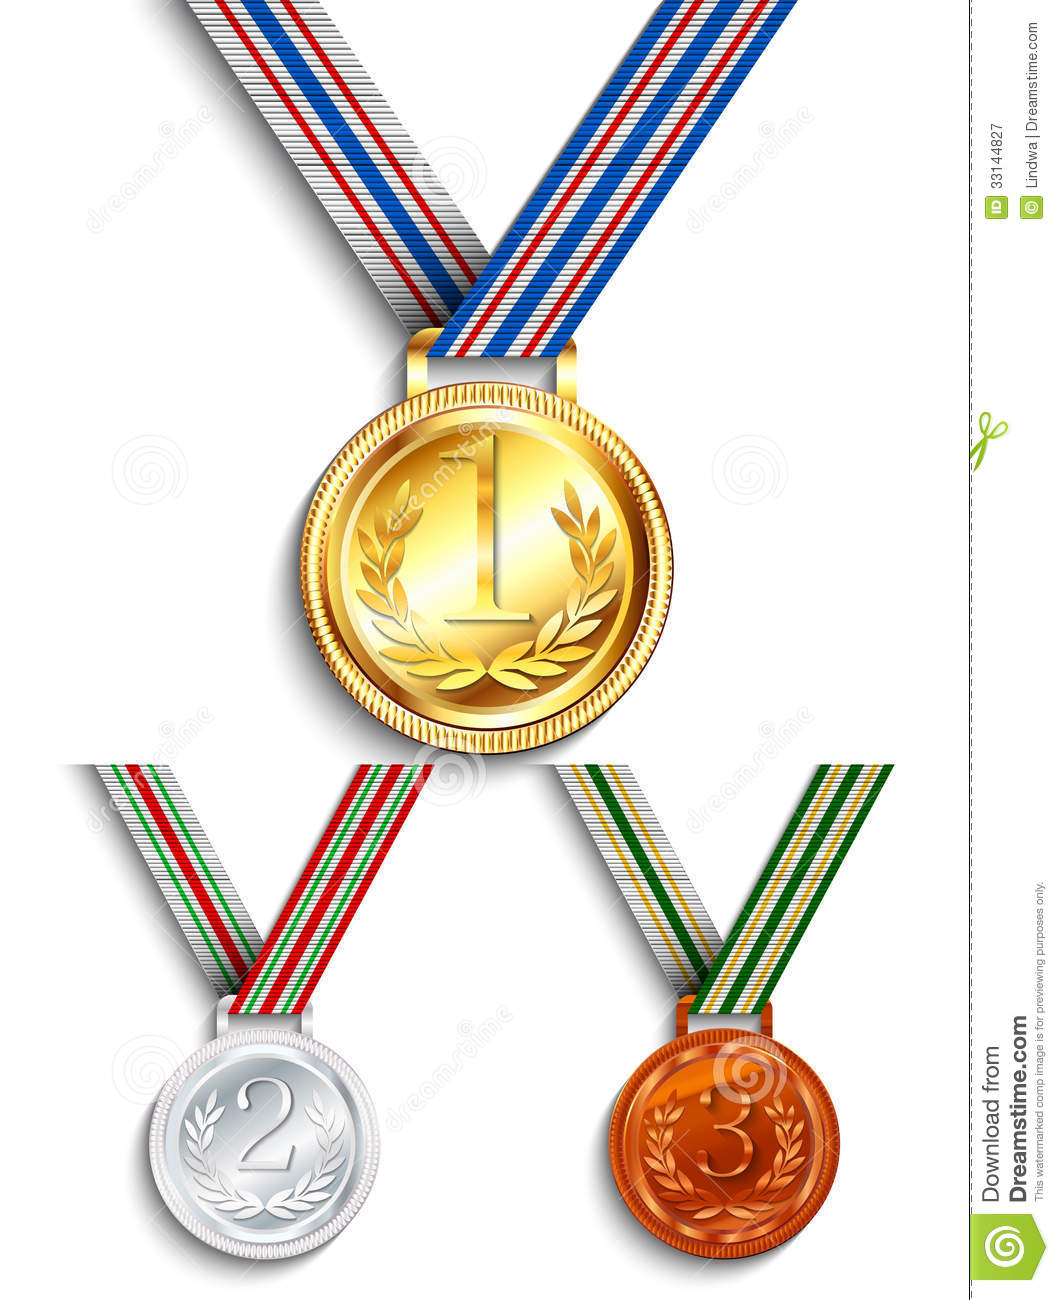 Gold, Silver And Bronze Medal Stock Vector - Image: 33144827